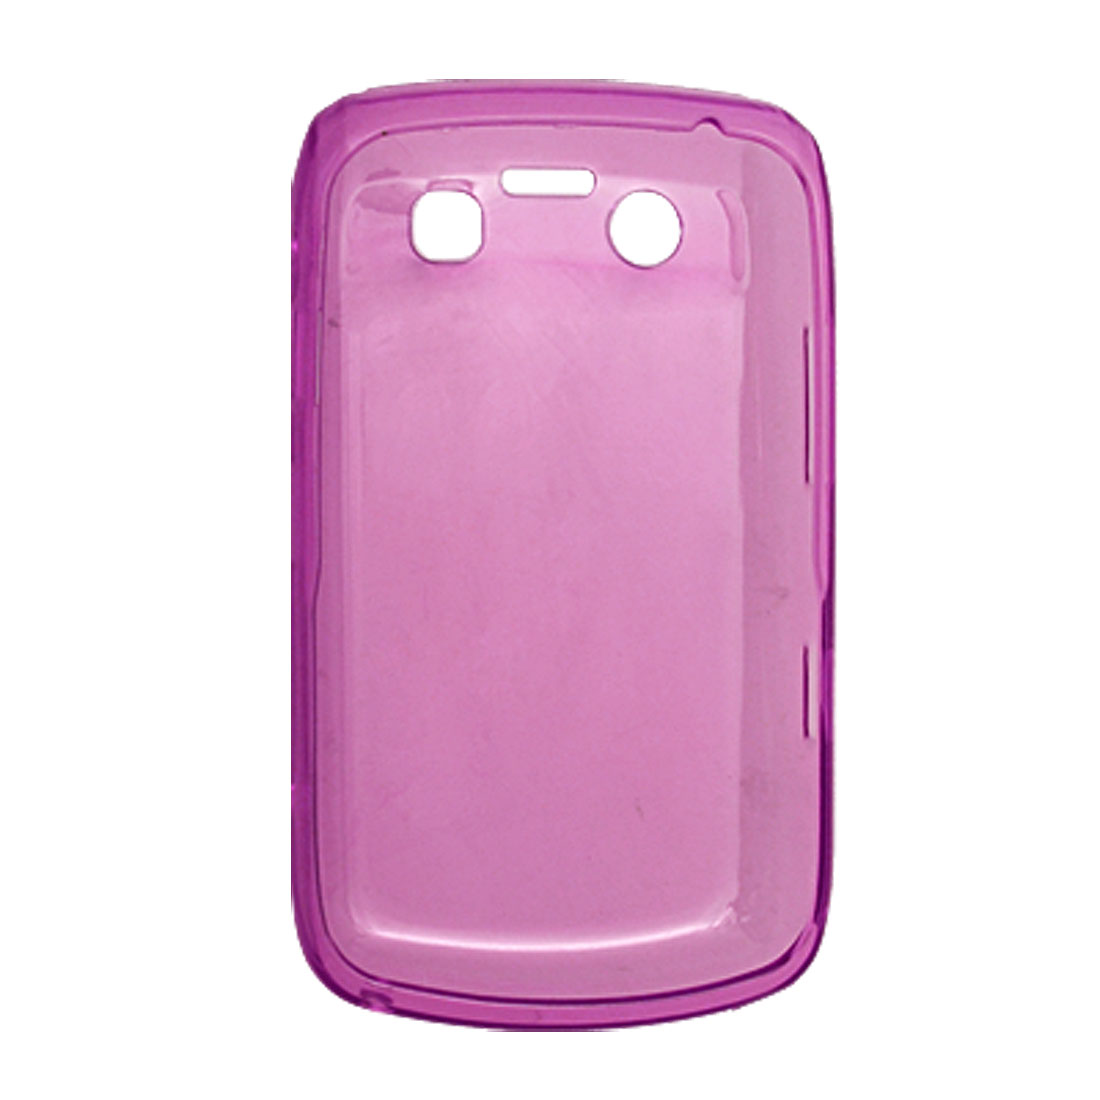 Pink Phone Soft Case Plastic Shell for BlackBerry 9700